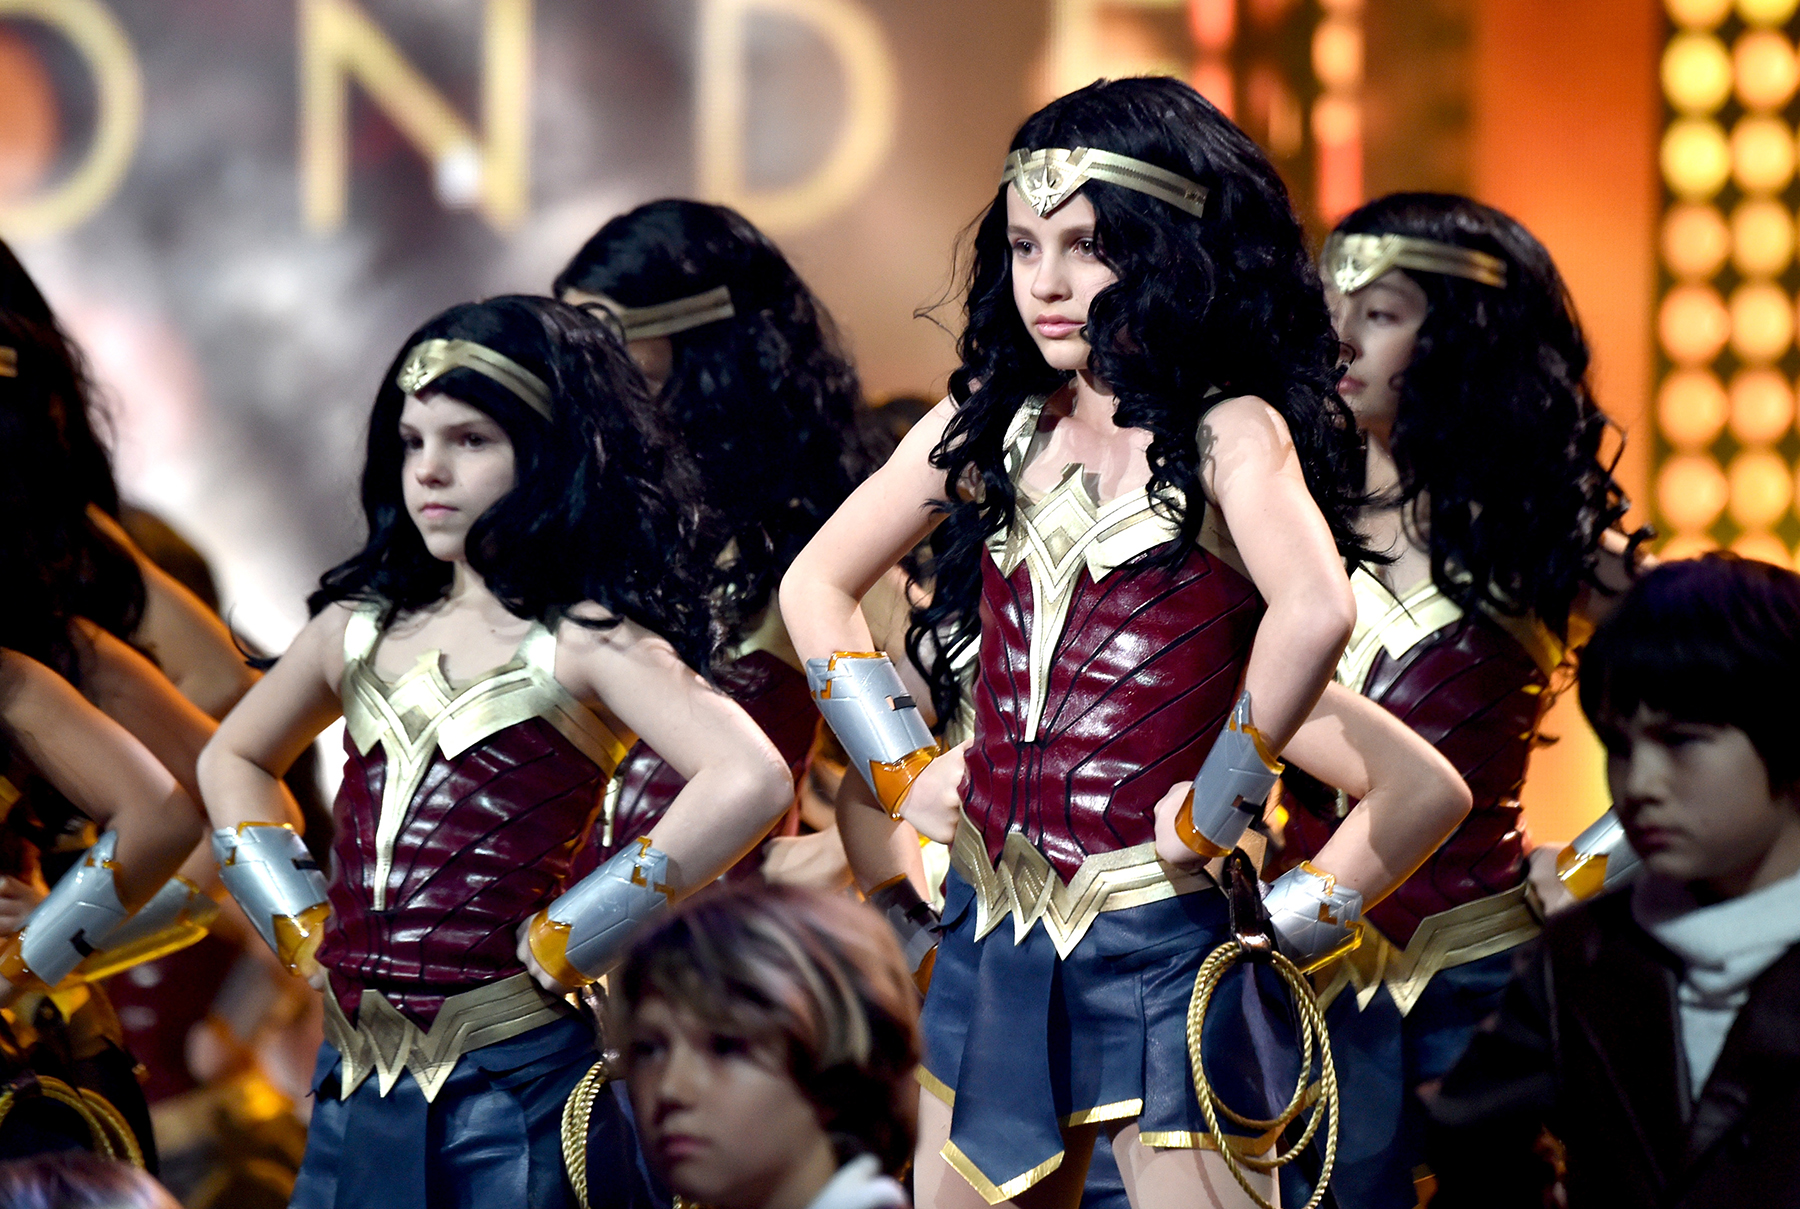 Girls on stage at 2017 Nickolodeon Kids' Choice Awards dressed as Wonder Woman